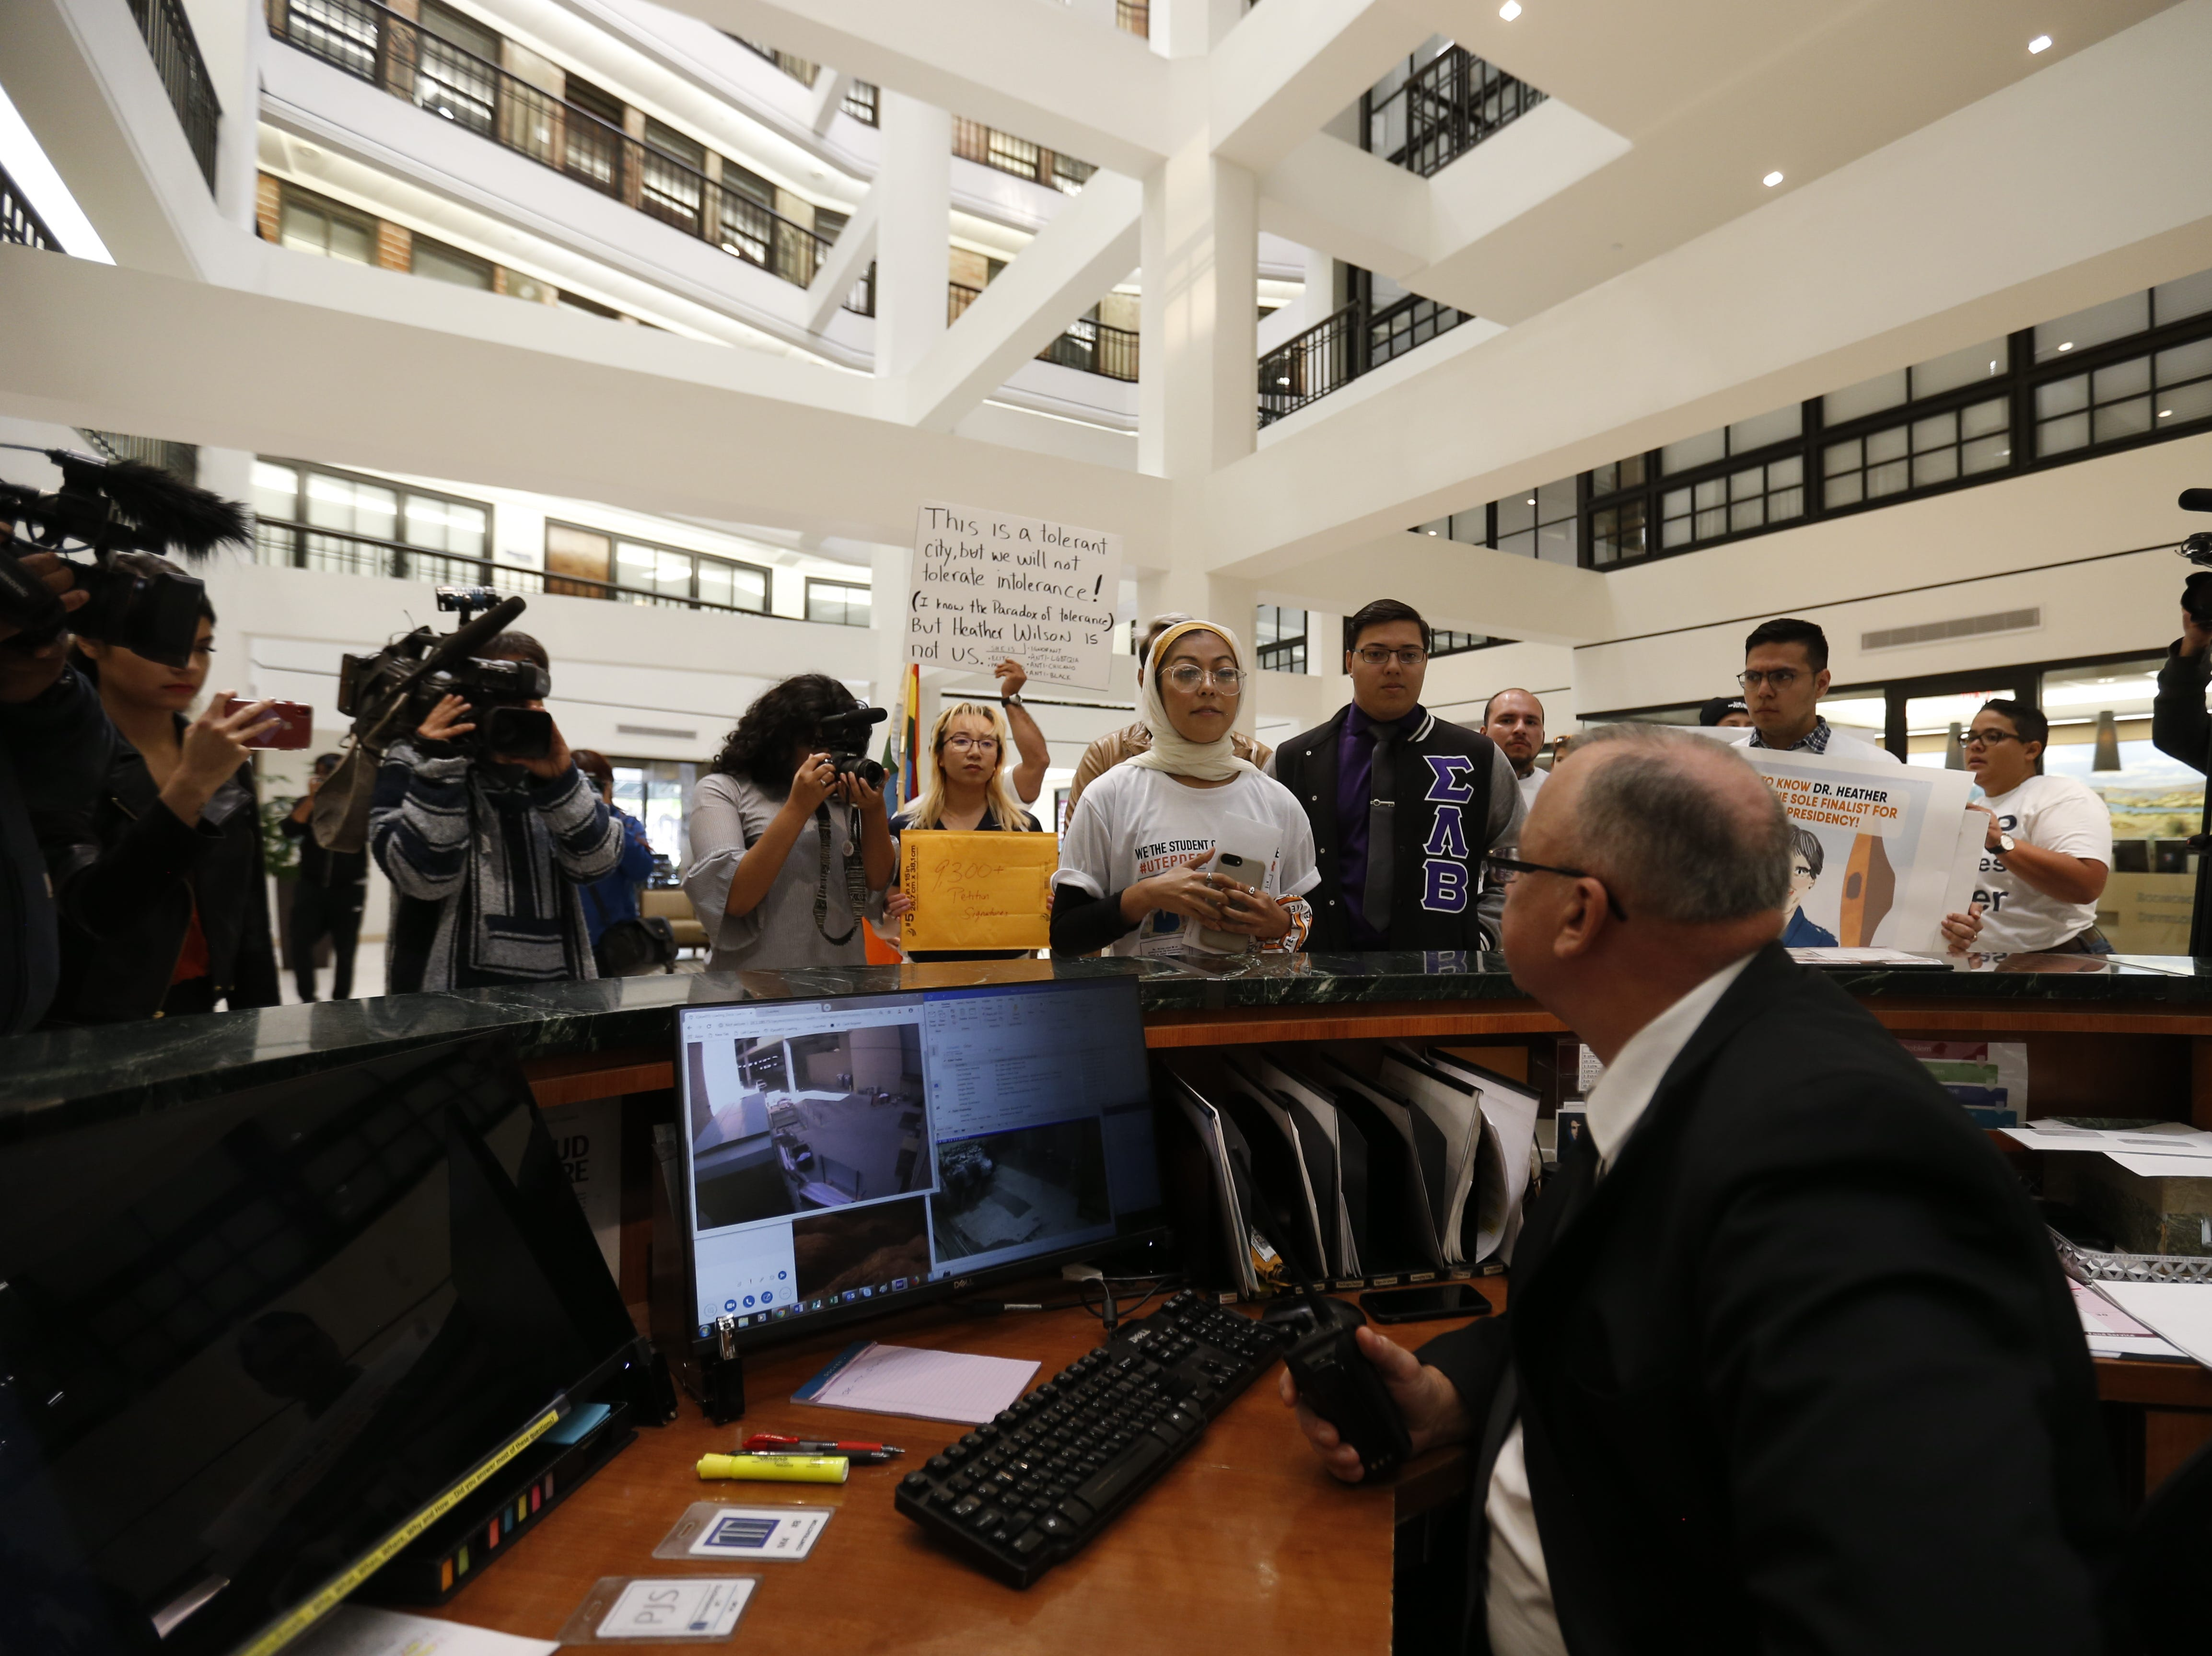 A group of UTEP students and community groups were unable to deliver over 9,000 signatures to UT board of regents Vice-chairman Paul Foster's office in the Downtown Centre building.